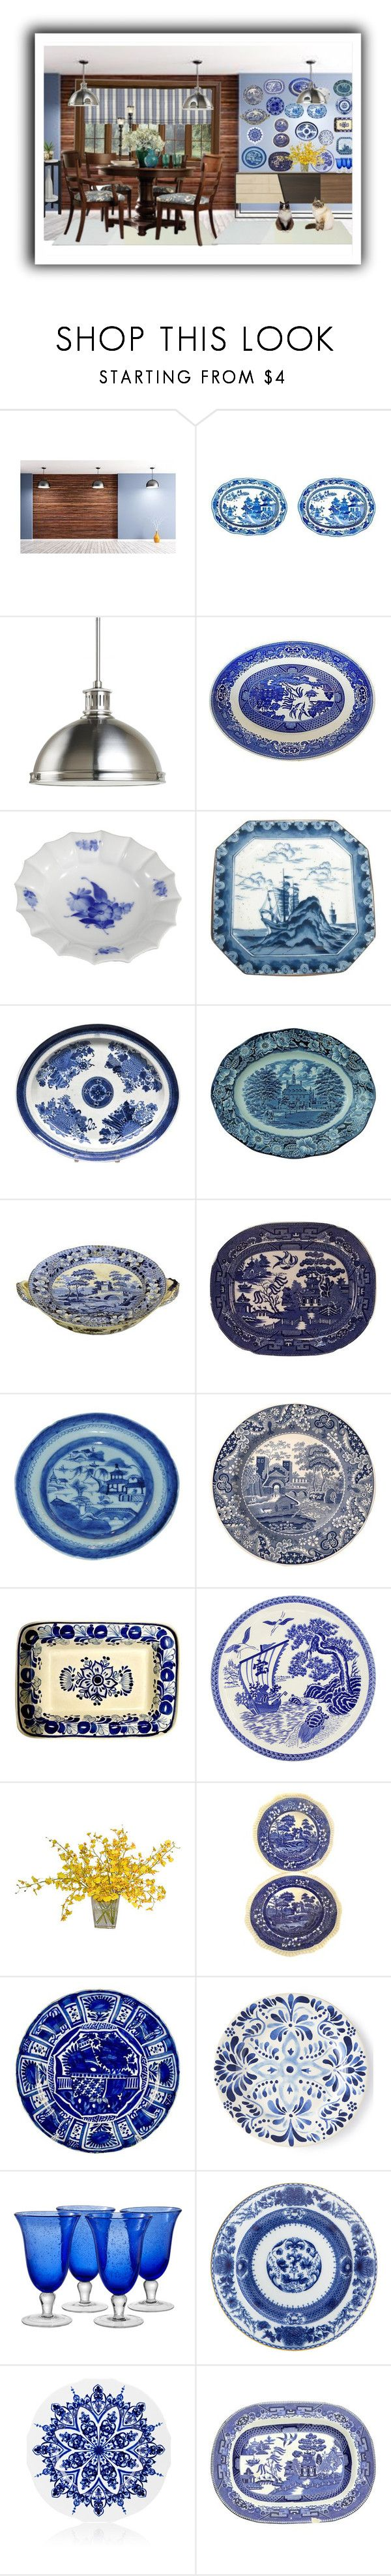 """""""Vintage transfer ware"""" by colonae ❤ liked on Polyvore featuring interior, interiors, interior design, home, home decor, interior decorating, Sea Gull Lighting, Royal Copenhagen, Spode and The French Bee"""